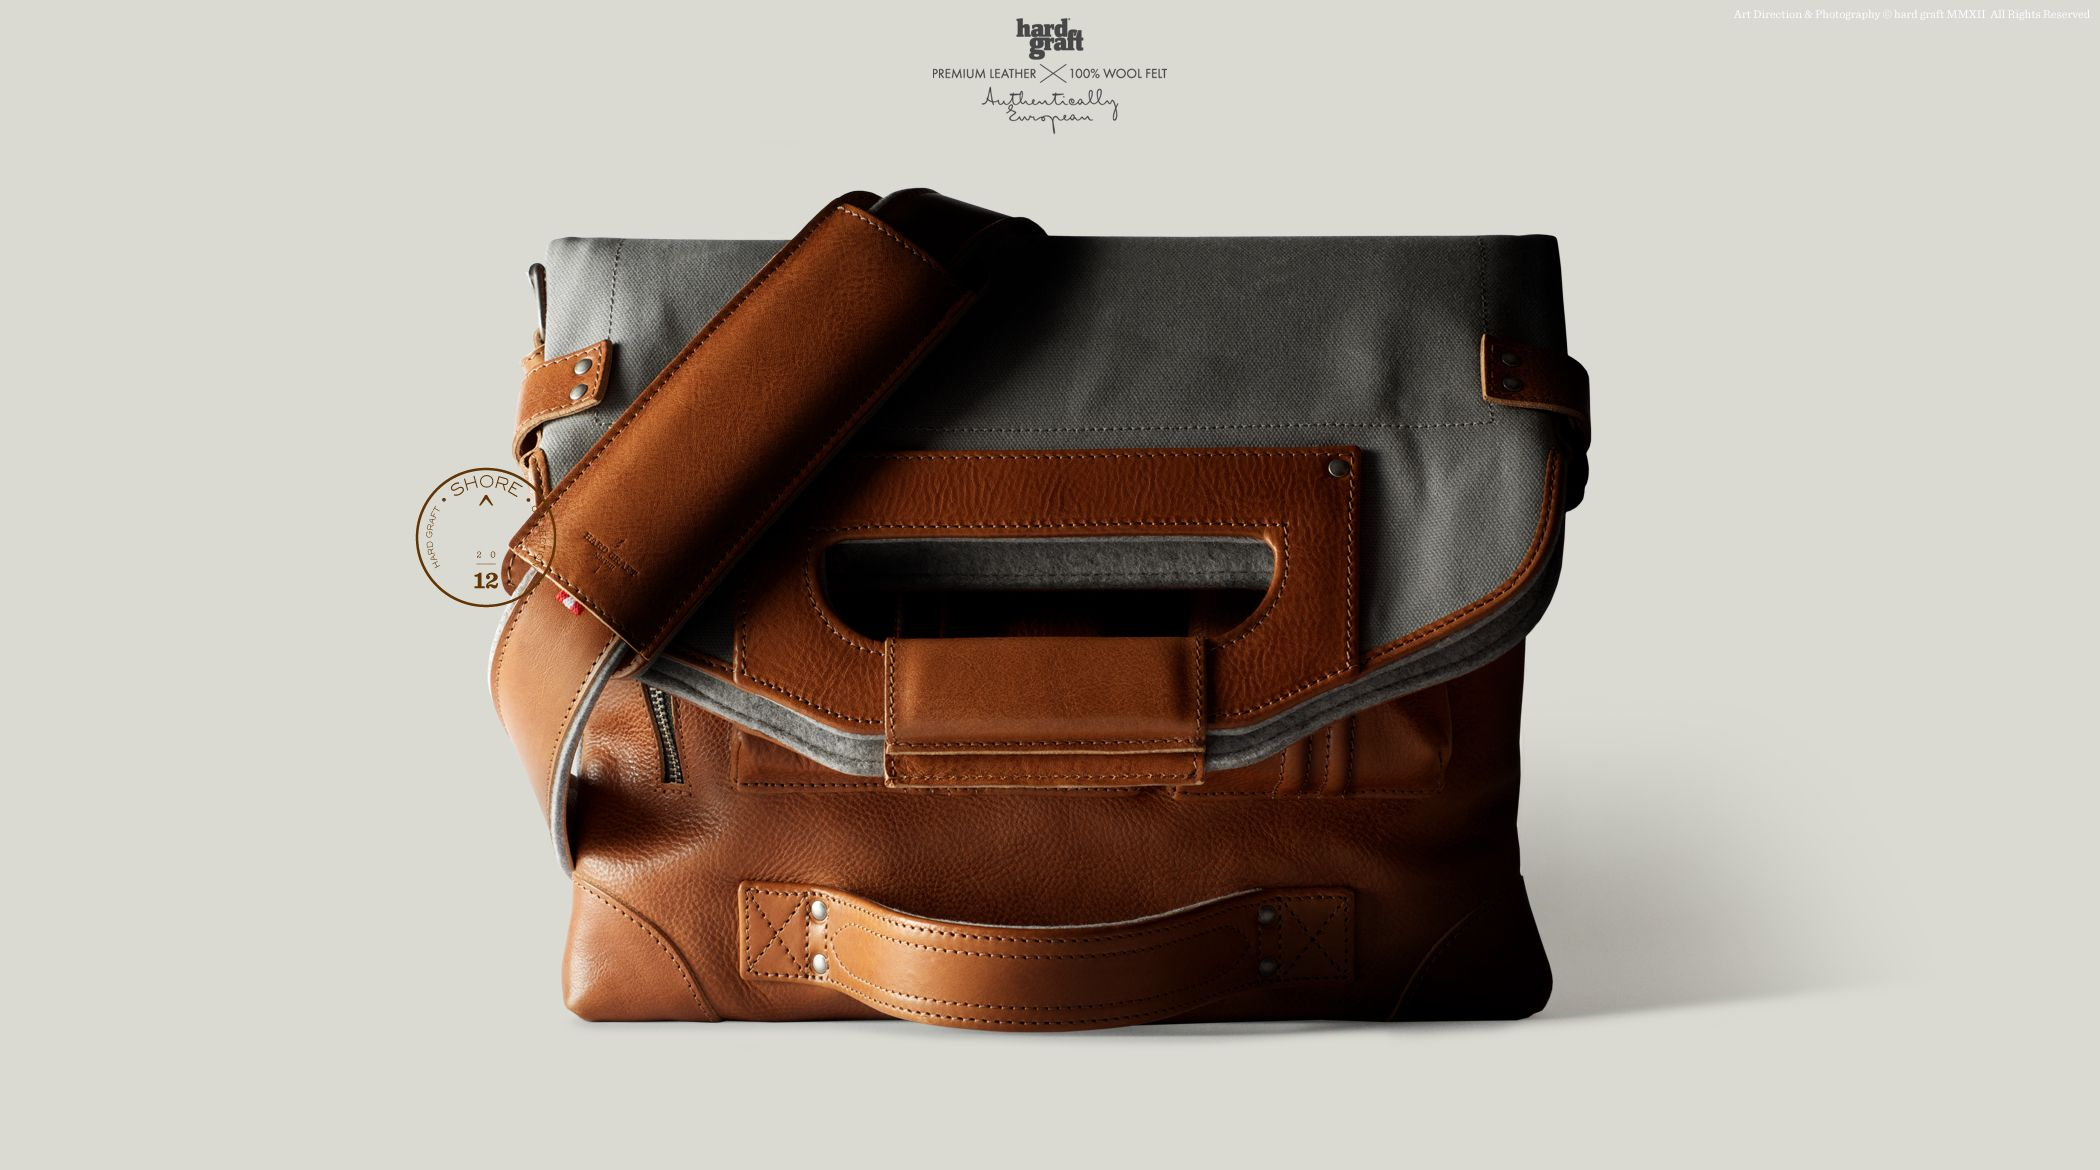 2Unfold Laptop Bag | Hard Graft